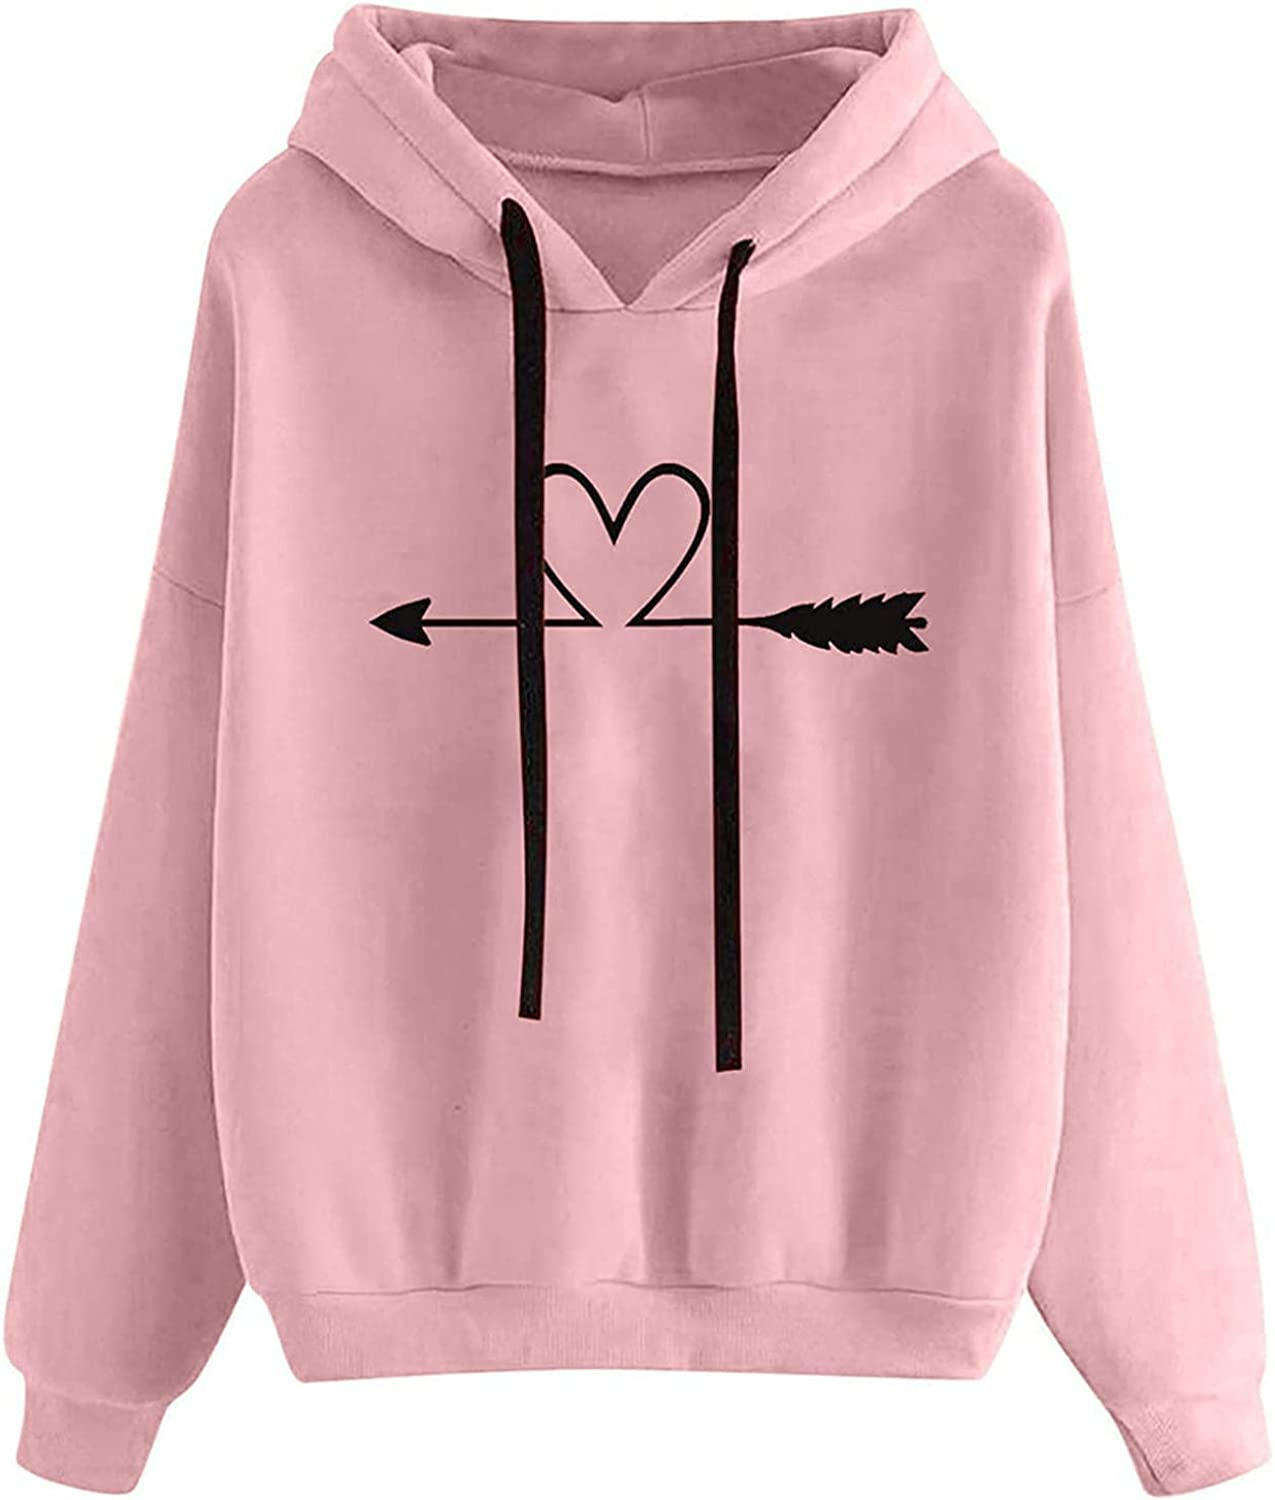 Fudule Graphic Hoodies for Women, Cute Heart Printed Sweatshirts Loose Fit Pullover Tops Long Sleeve Shirts Fall Hooded